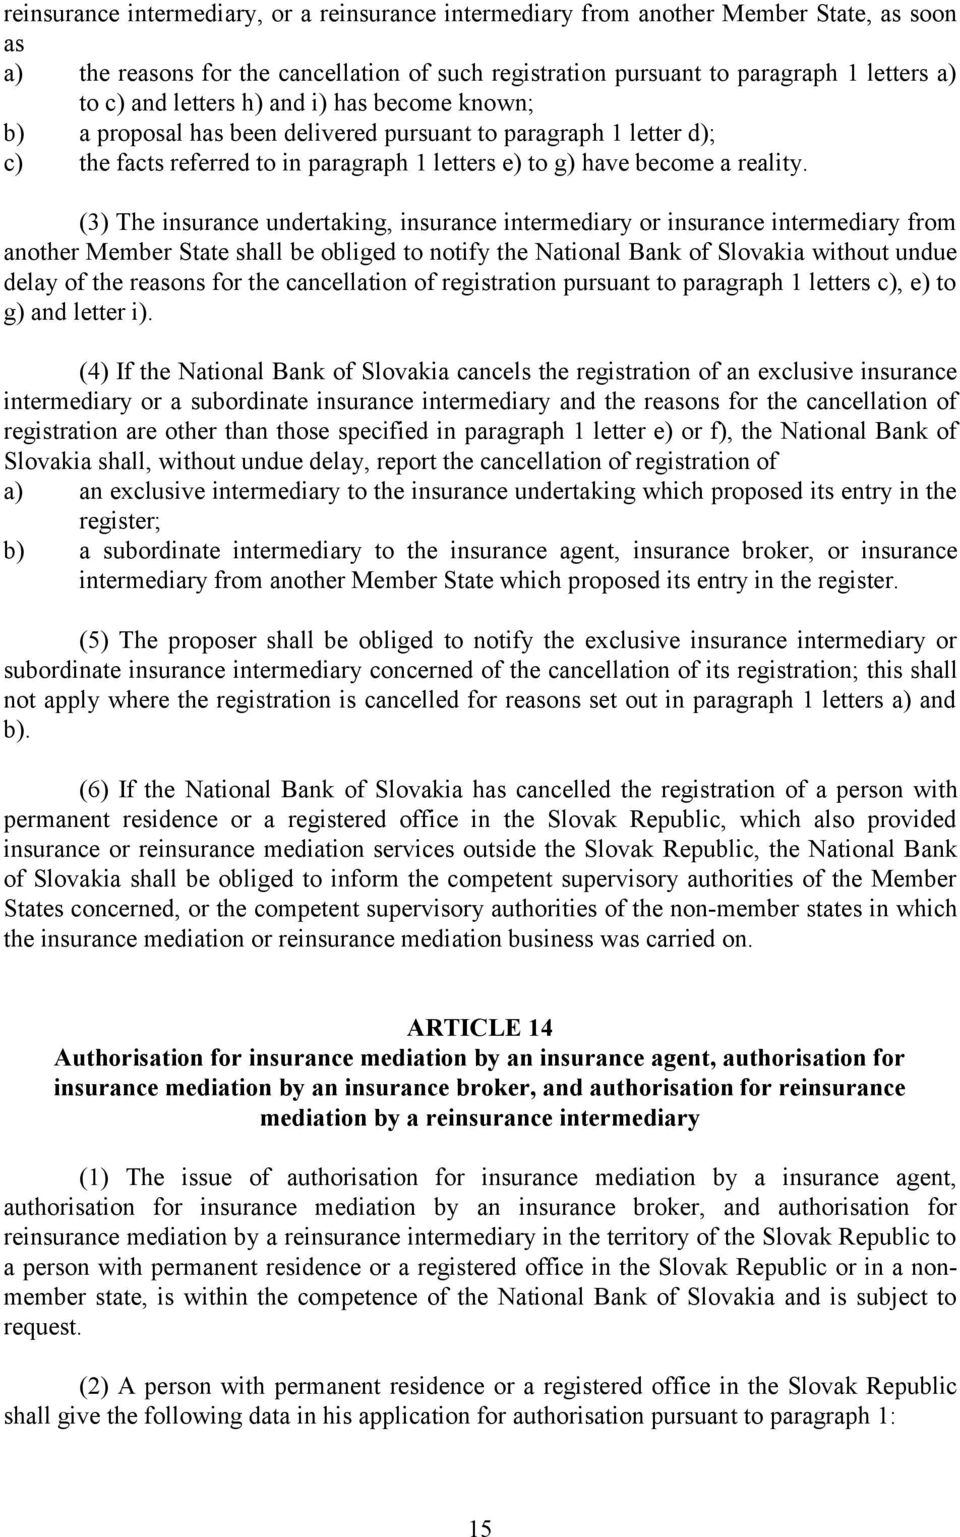 (3) The insurance undertaking, insurance intermediary or insurance intermediary from another Member State shall be obliged to notify the National Bank of Slovakia without undue delay of the reasons